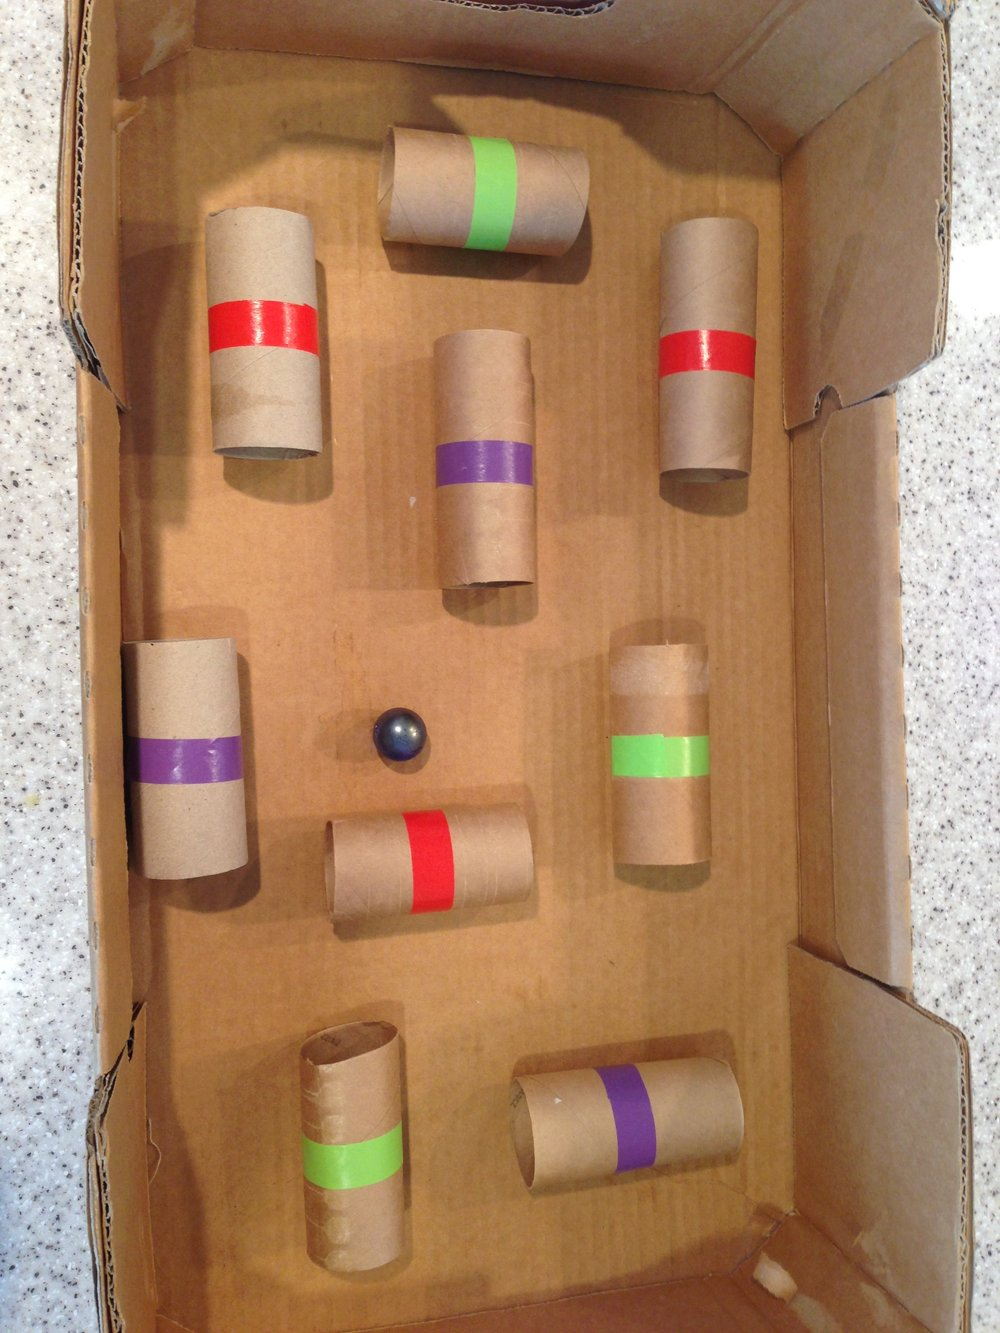 Marble maze - Instructions1. Tape different color tape around toilet rolls (for different points)2. Glue or tape the toilet rolls in a cardboard box3. Move the box around to get the marble through the different tunnels to get points